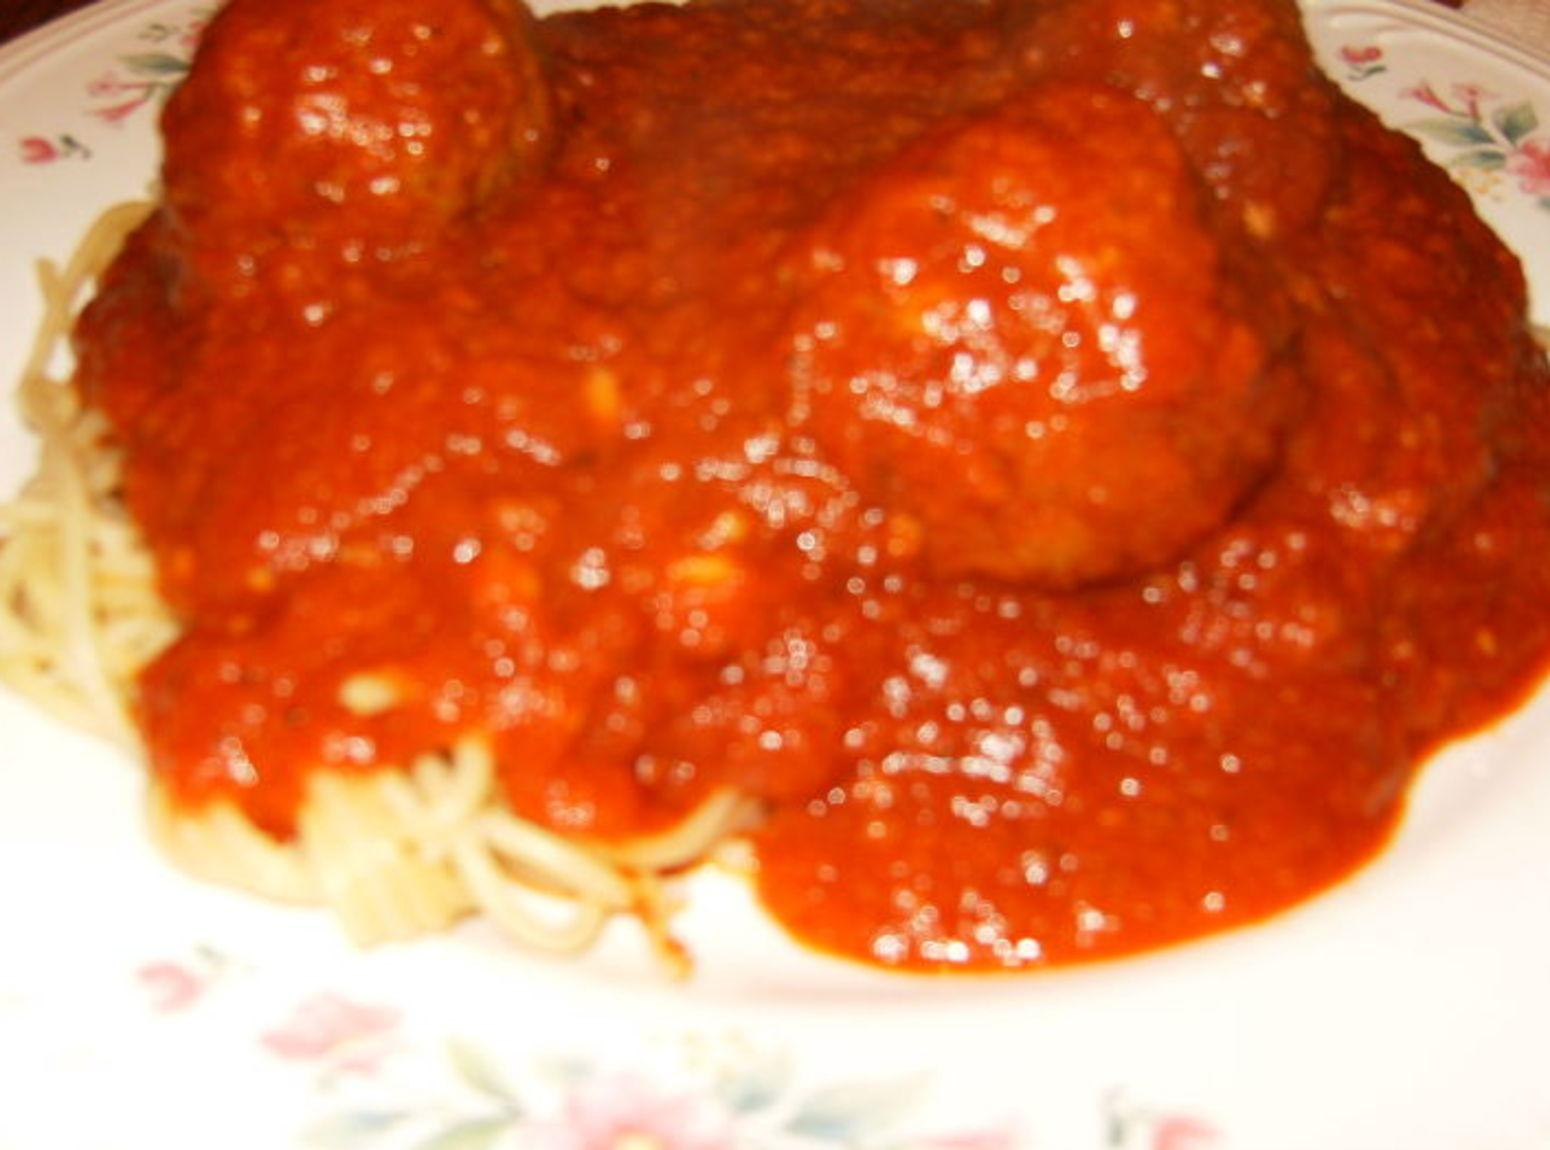 Homemade Italian Spaghetti Sauce and Meatballs Recipe | Just A Pinch ...